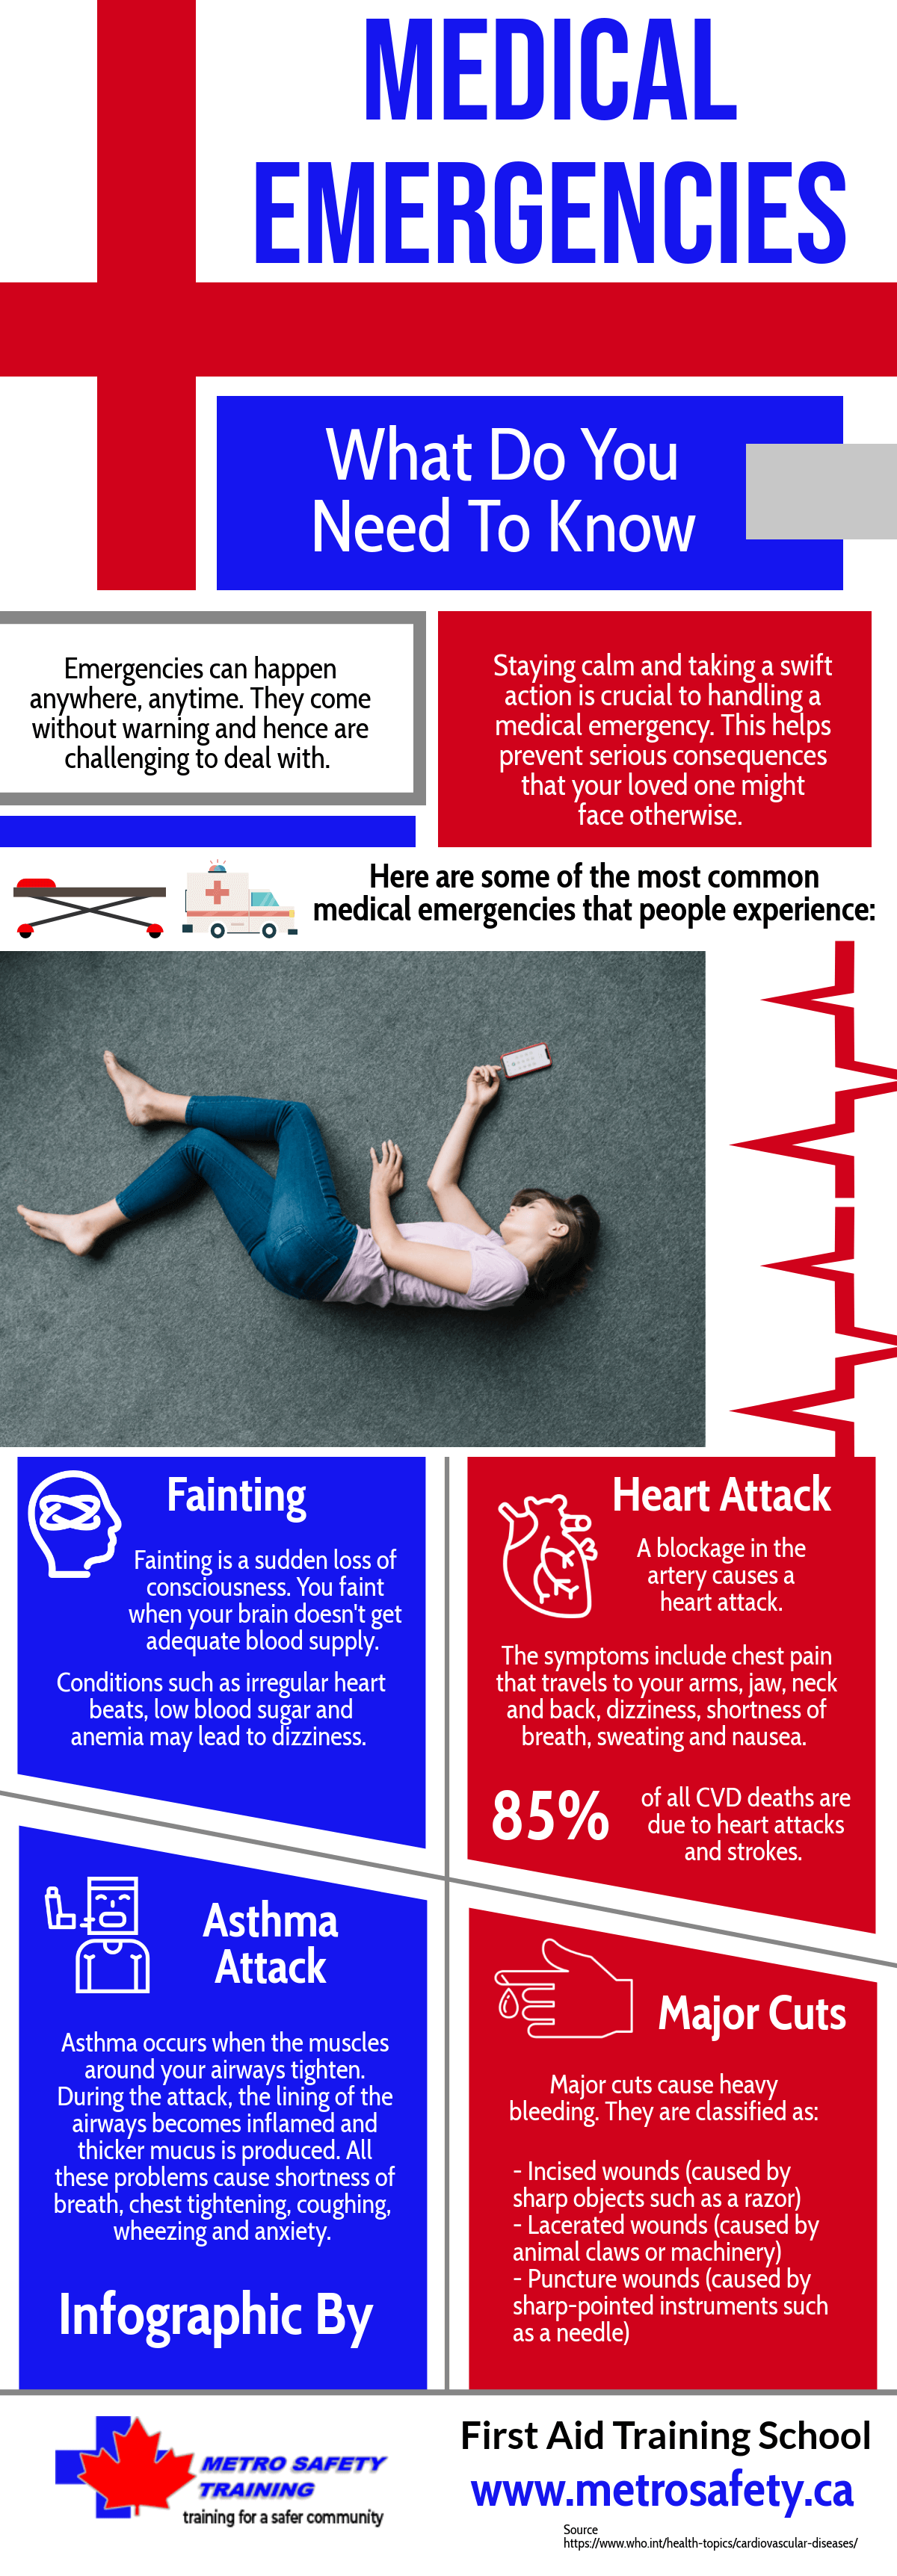 Medical Emergencies -What Do You Need To Know